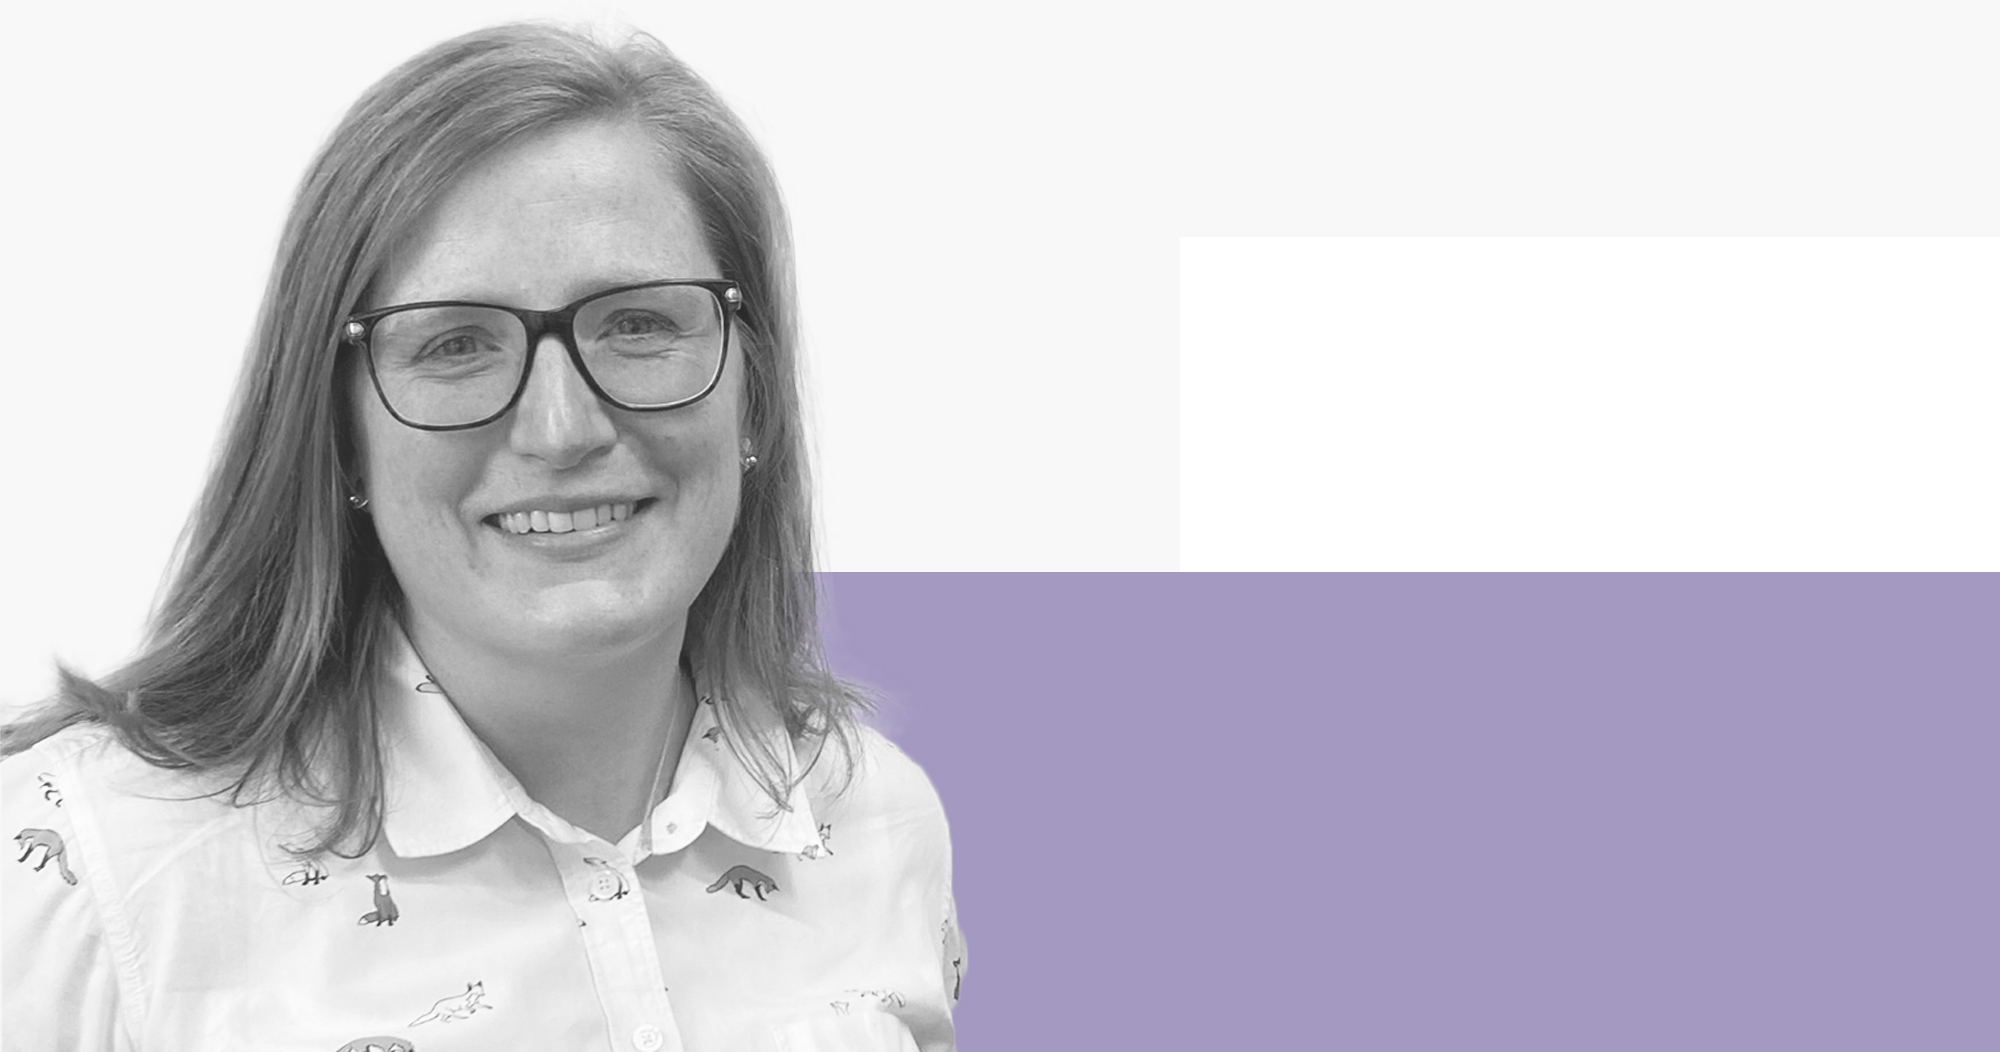 Kate, a secondary school teacher in Scotland, on a light grey and light purple background